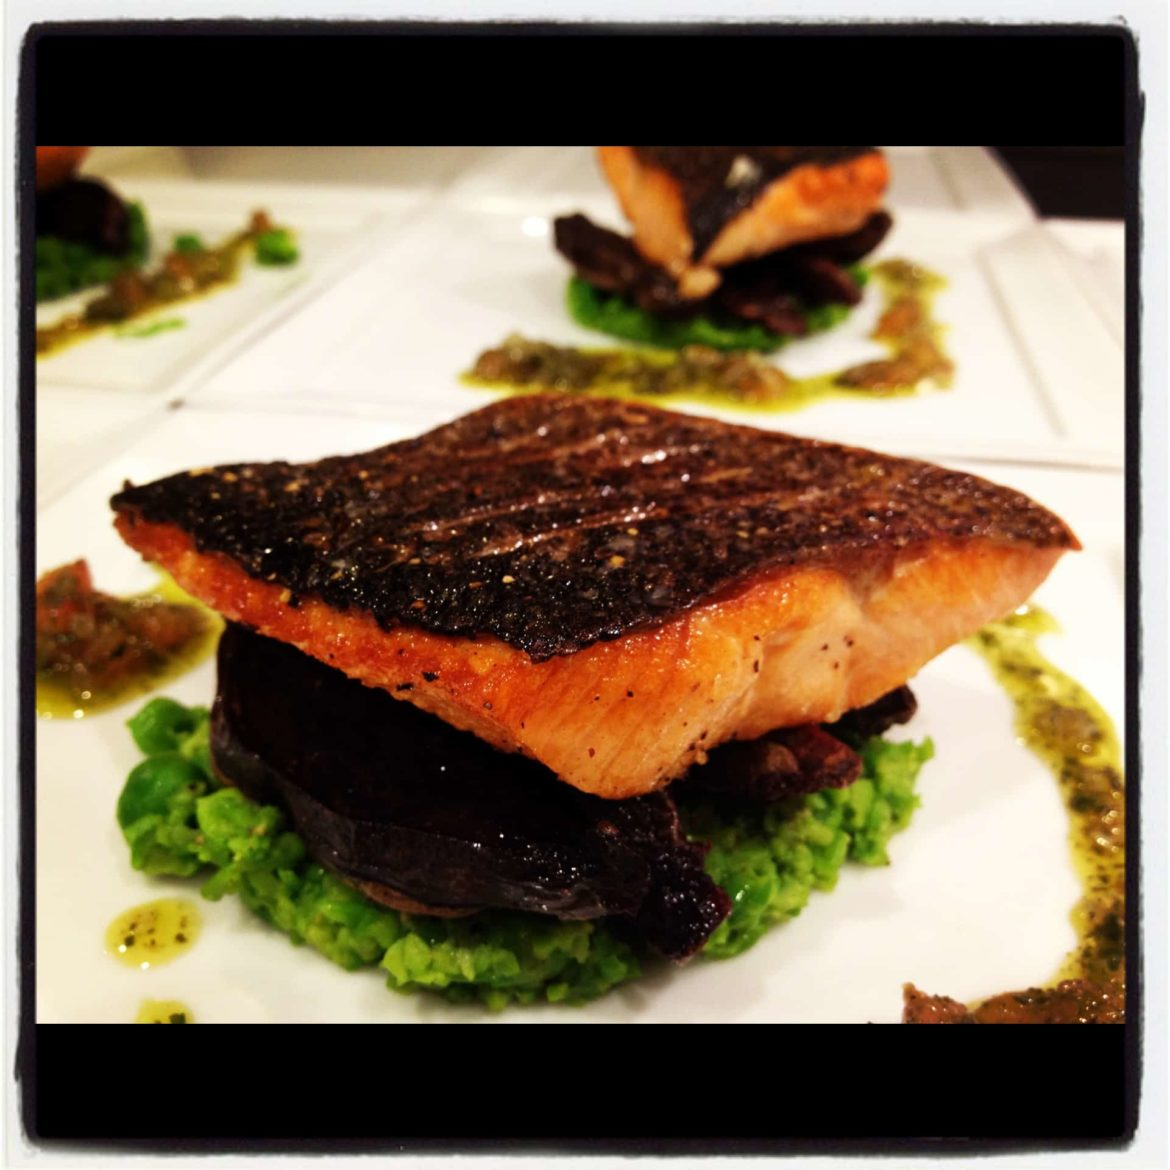 tantalizing wild trout served atop crushed spring peas a recipe straight from the galley of our superyachts